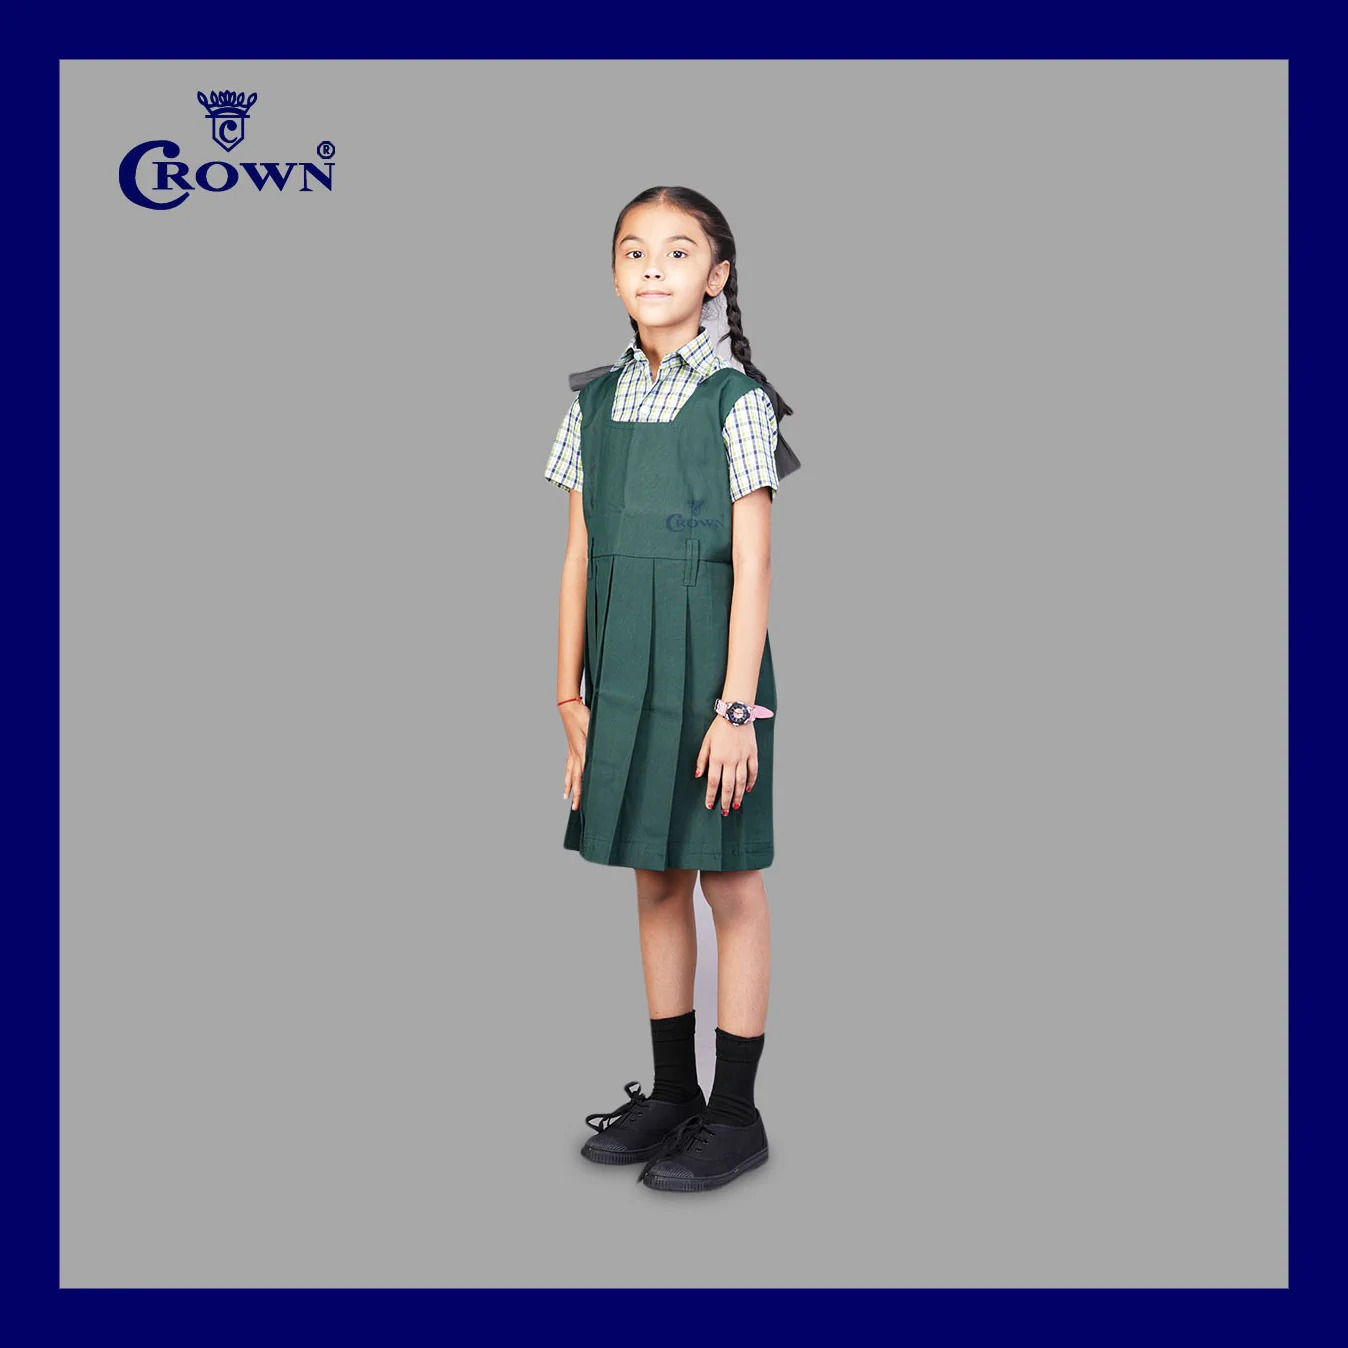 Crown TN Govt 1 - 5thStd Bottle Green Colour Pinafore (8-9 Years)